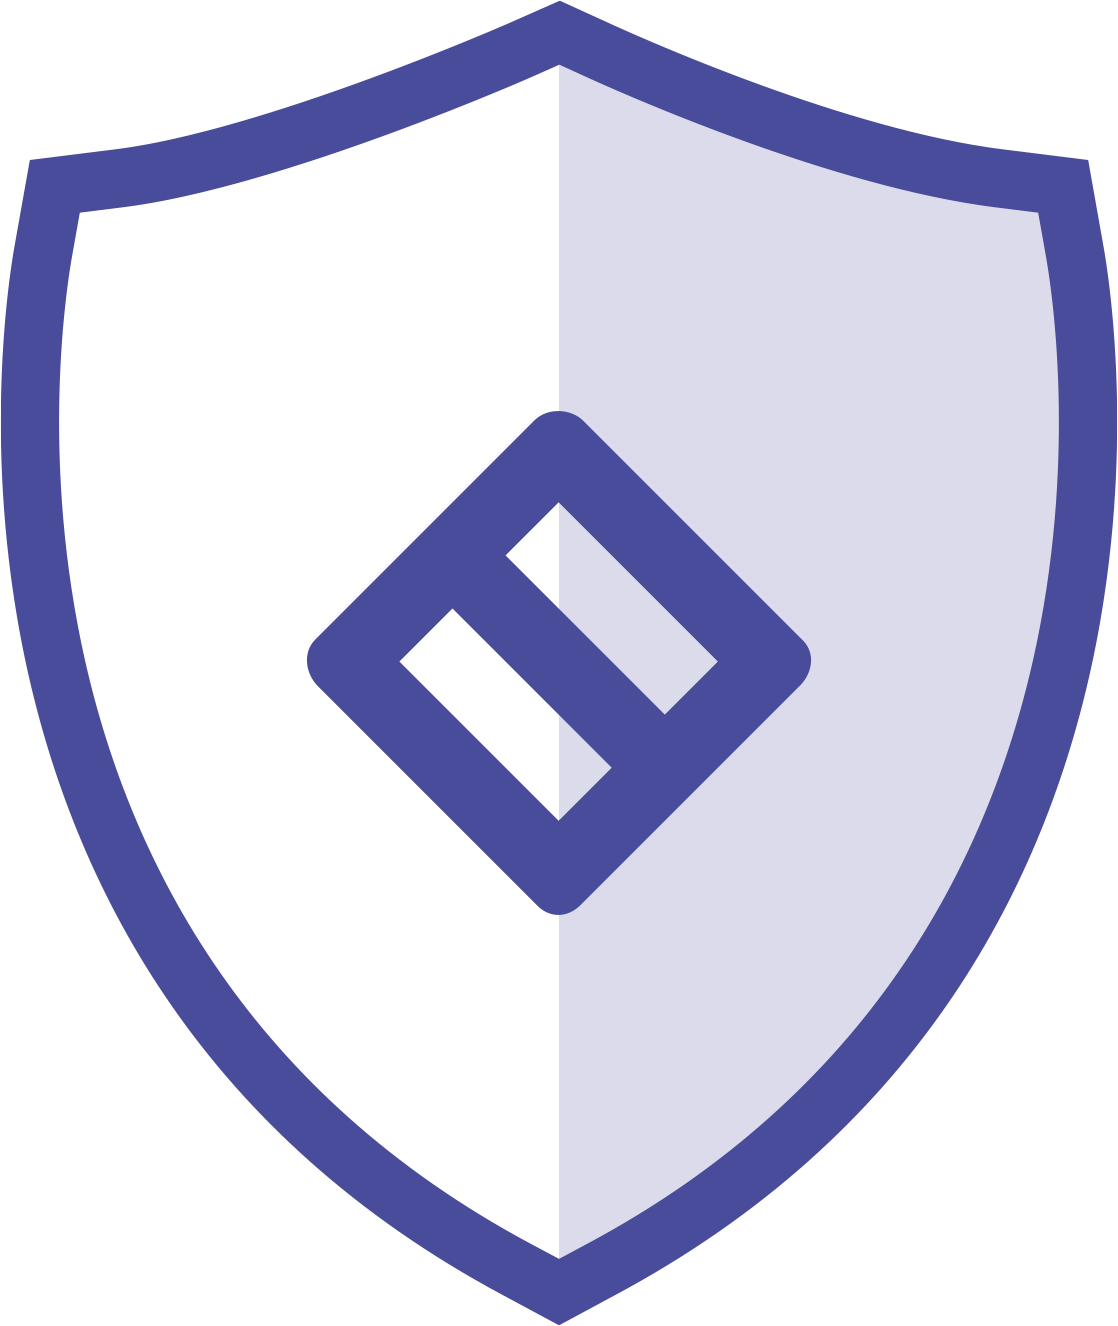 SafeFund shield